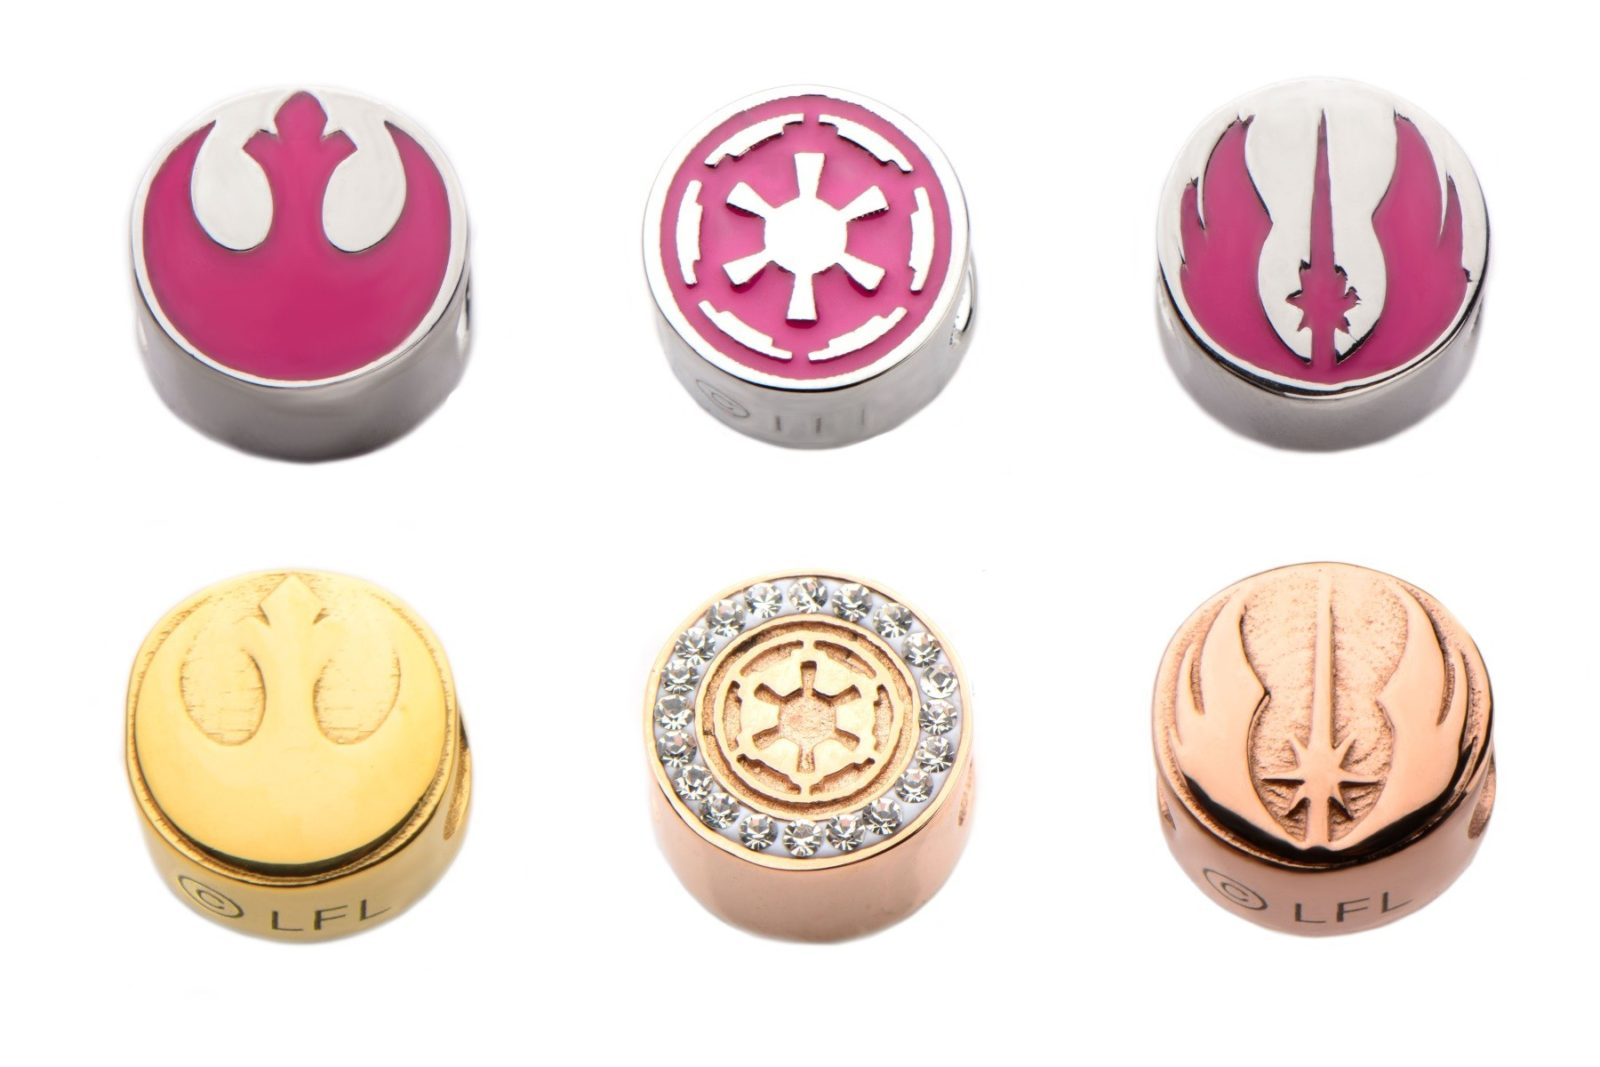 New Star Wars jewelry from Body Vibe